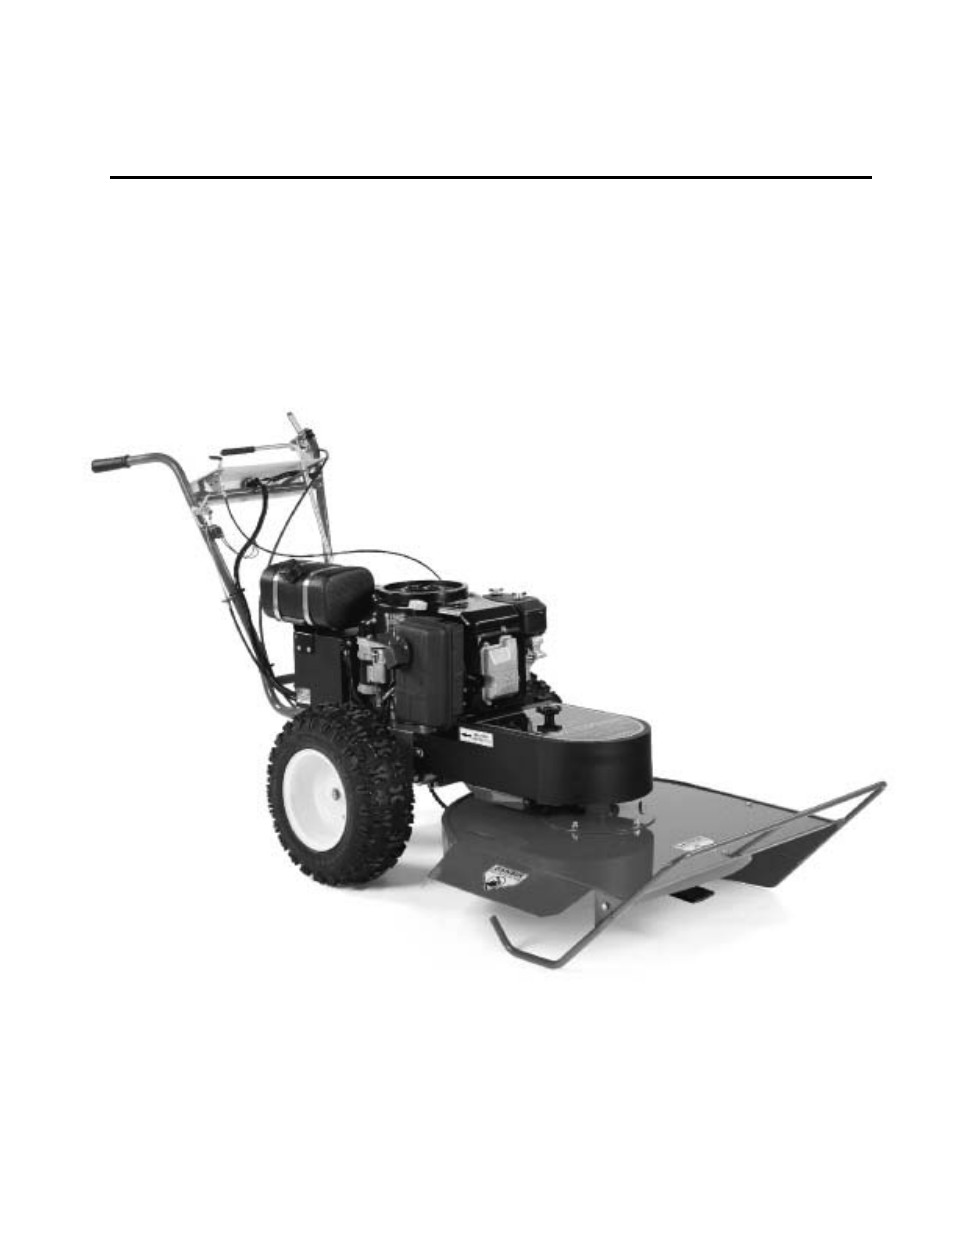 DR Power Walk-behind 8 - 15 HP (1998 - 2001) User Manual | 40 pages | Dr Mower Wiring Diagram |  | Manuals Directory